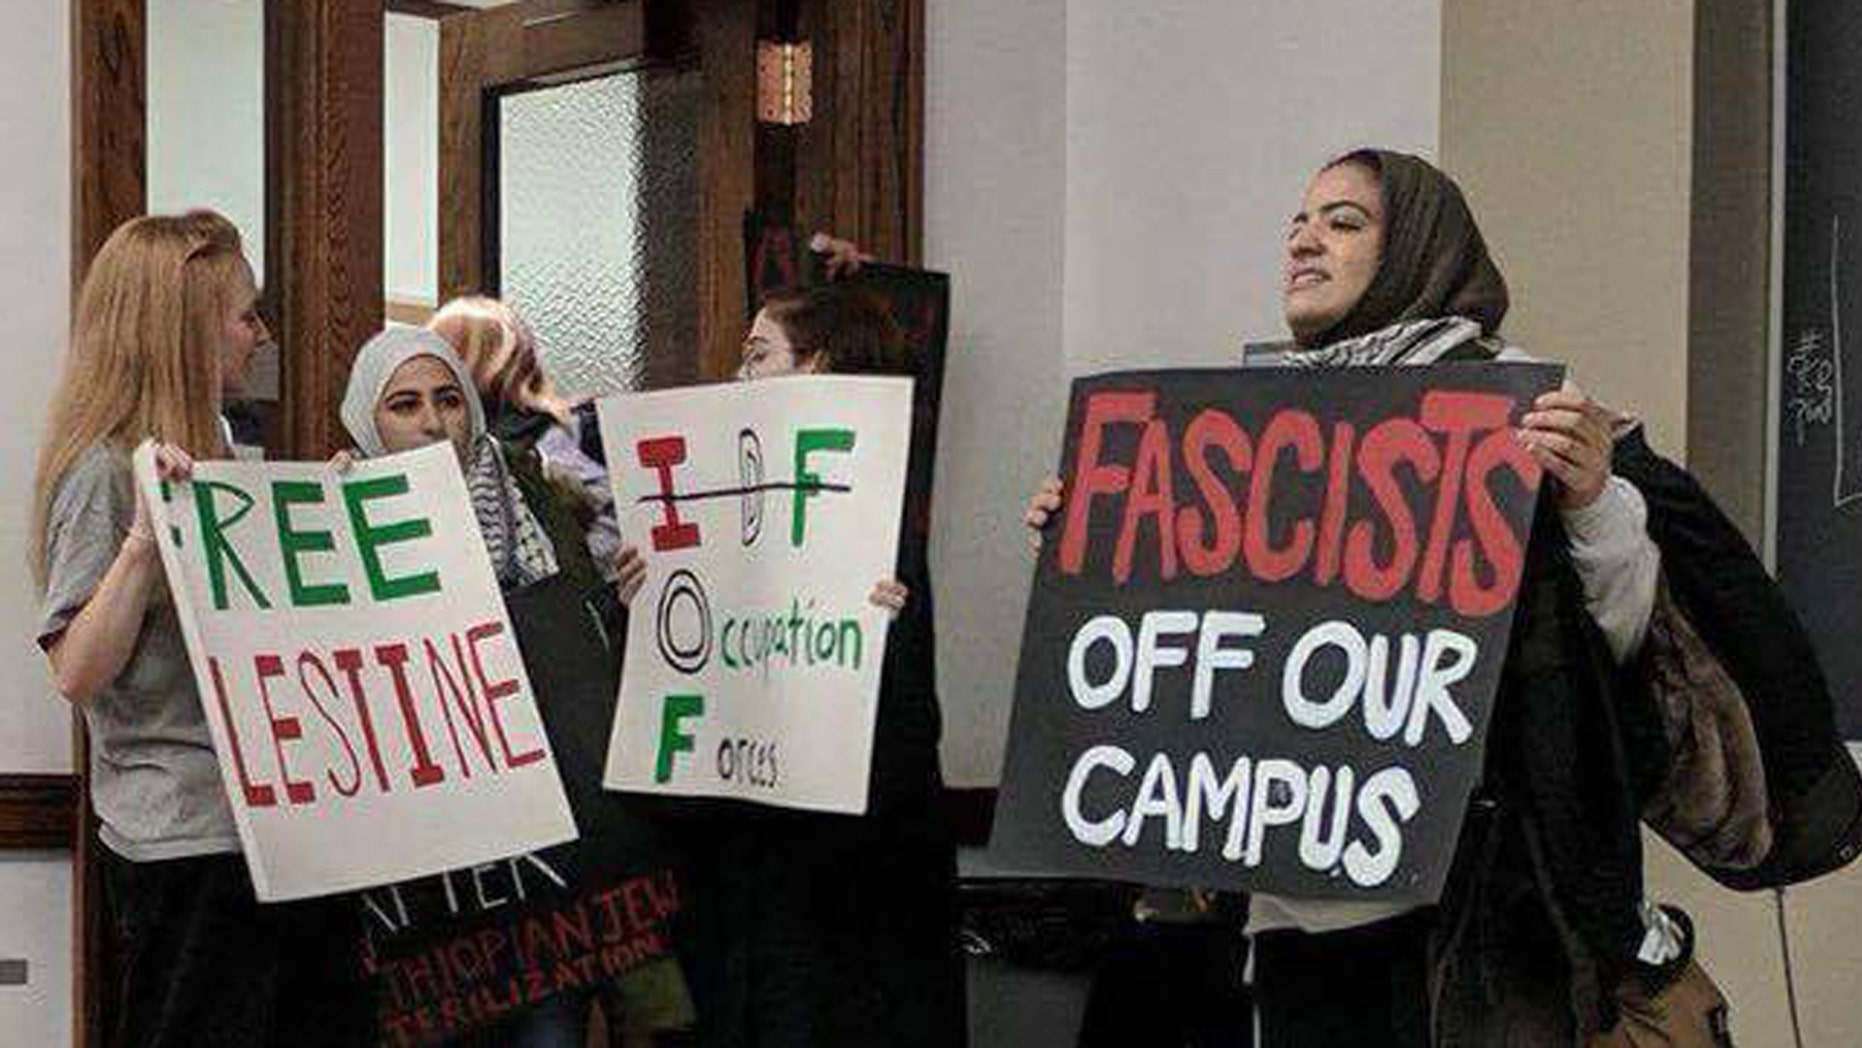 Members of Students for Justice in Palestine disrupted a speech by openly gay Israeli activist, Hen Mazzig, at the University of Illinois at Urbana-Champaign.